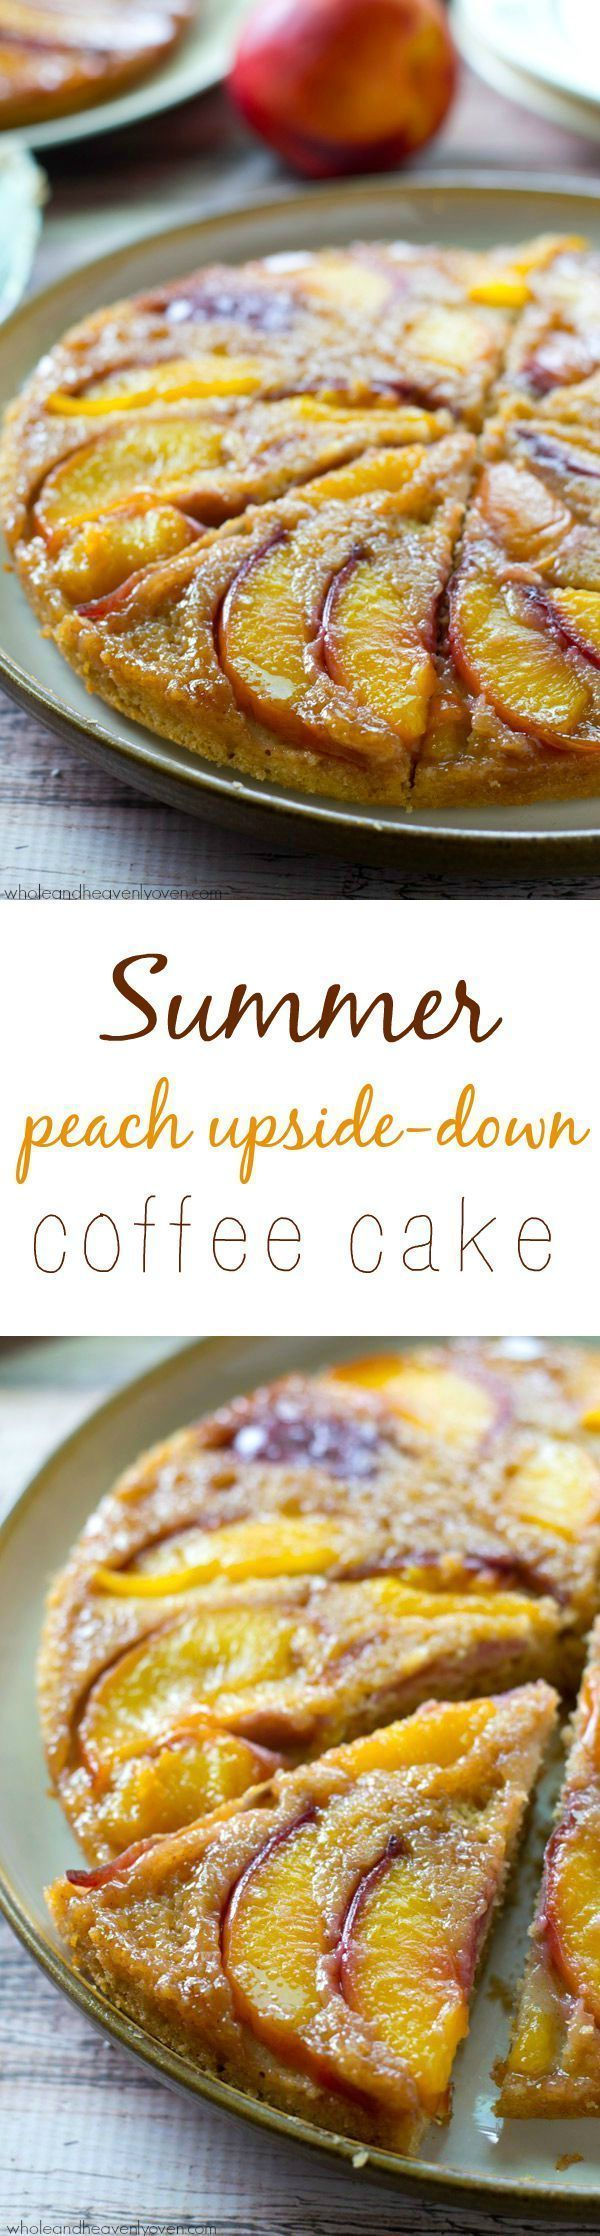 unbelievable caramel-y peach topping stars in this classic summer cake, made healthier and into breakfast coffee cake-form! @Sarah | Whole and Heavenly Oven